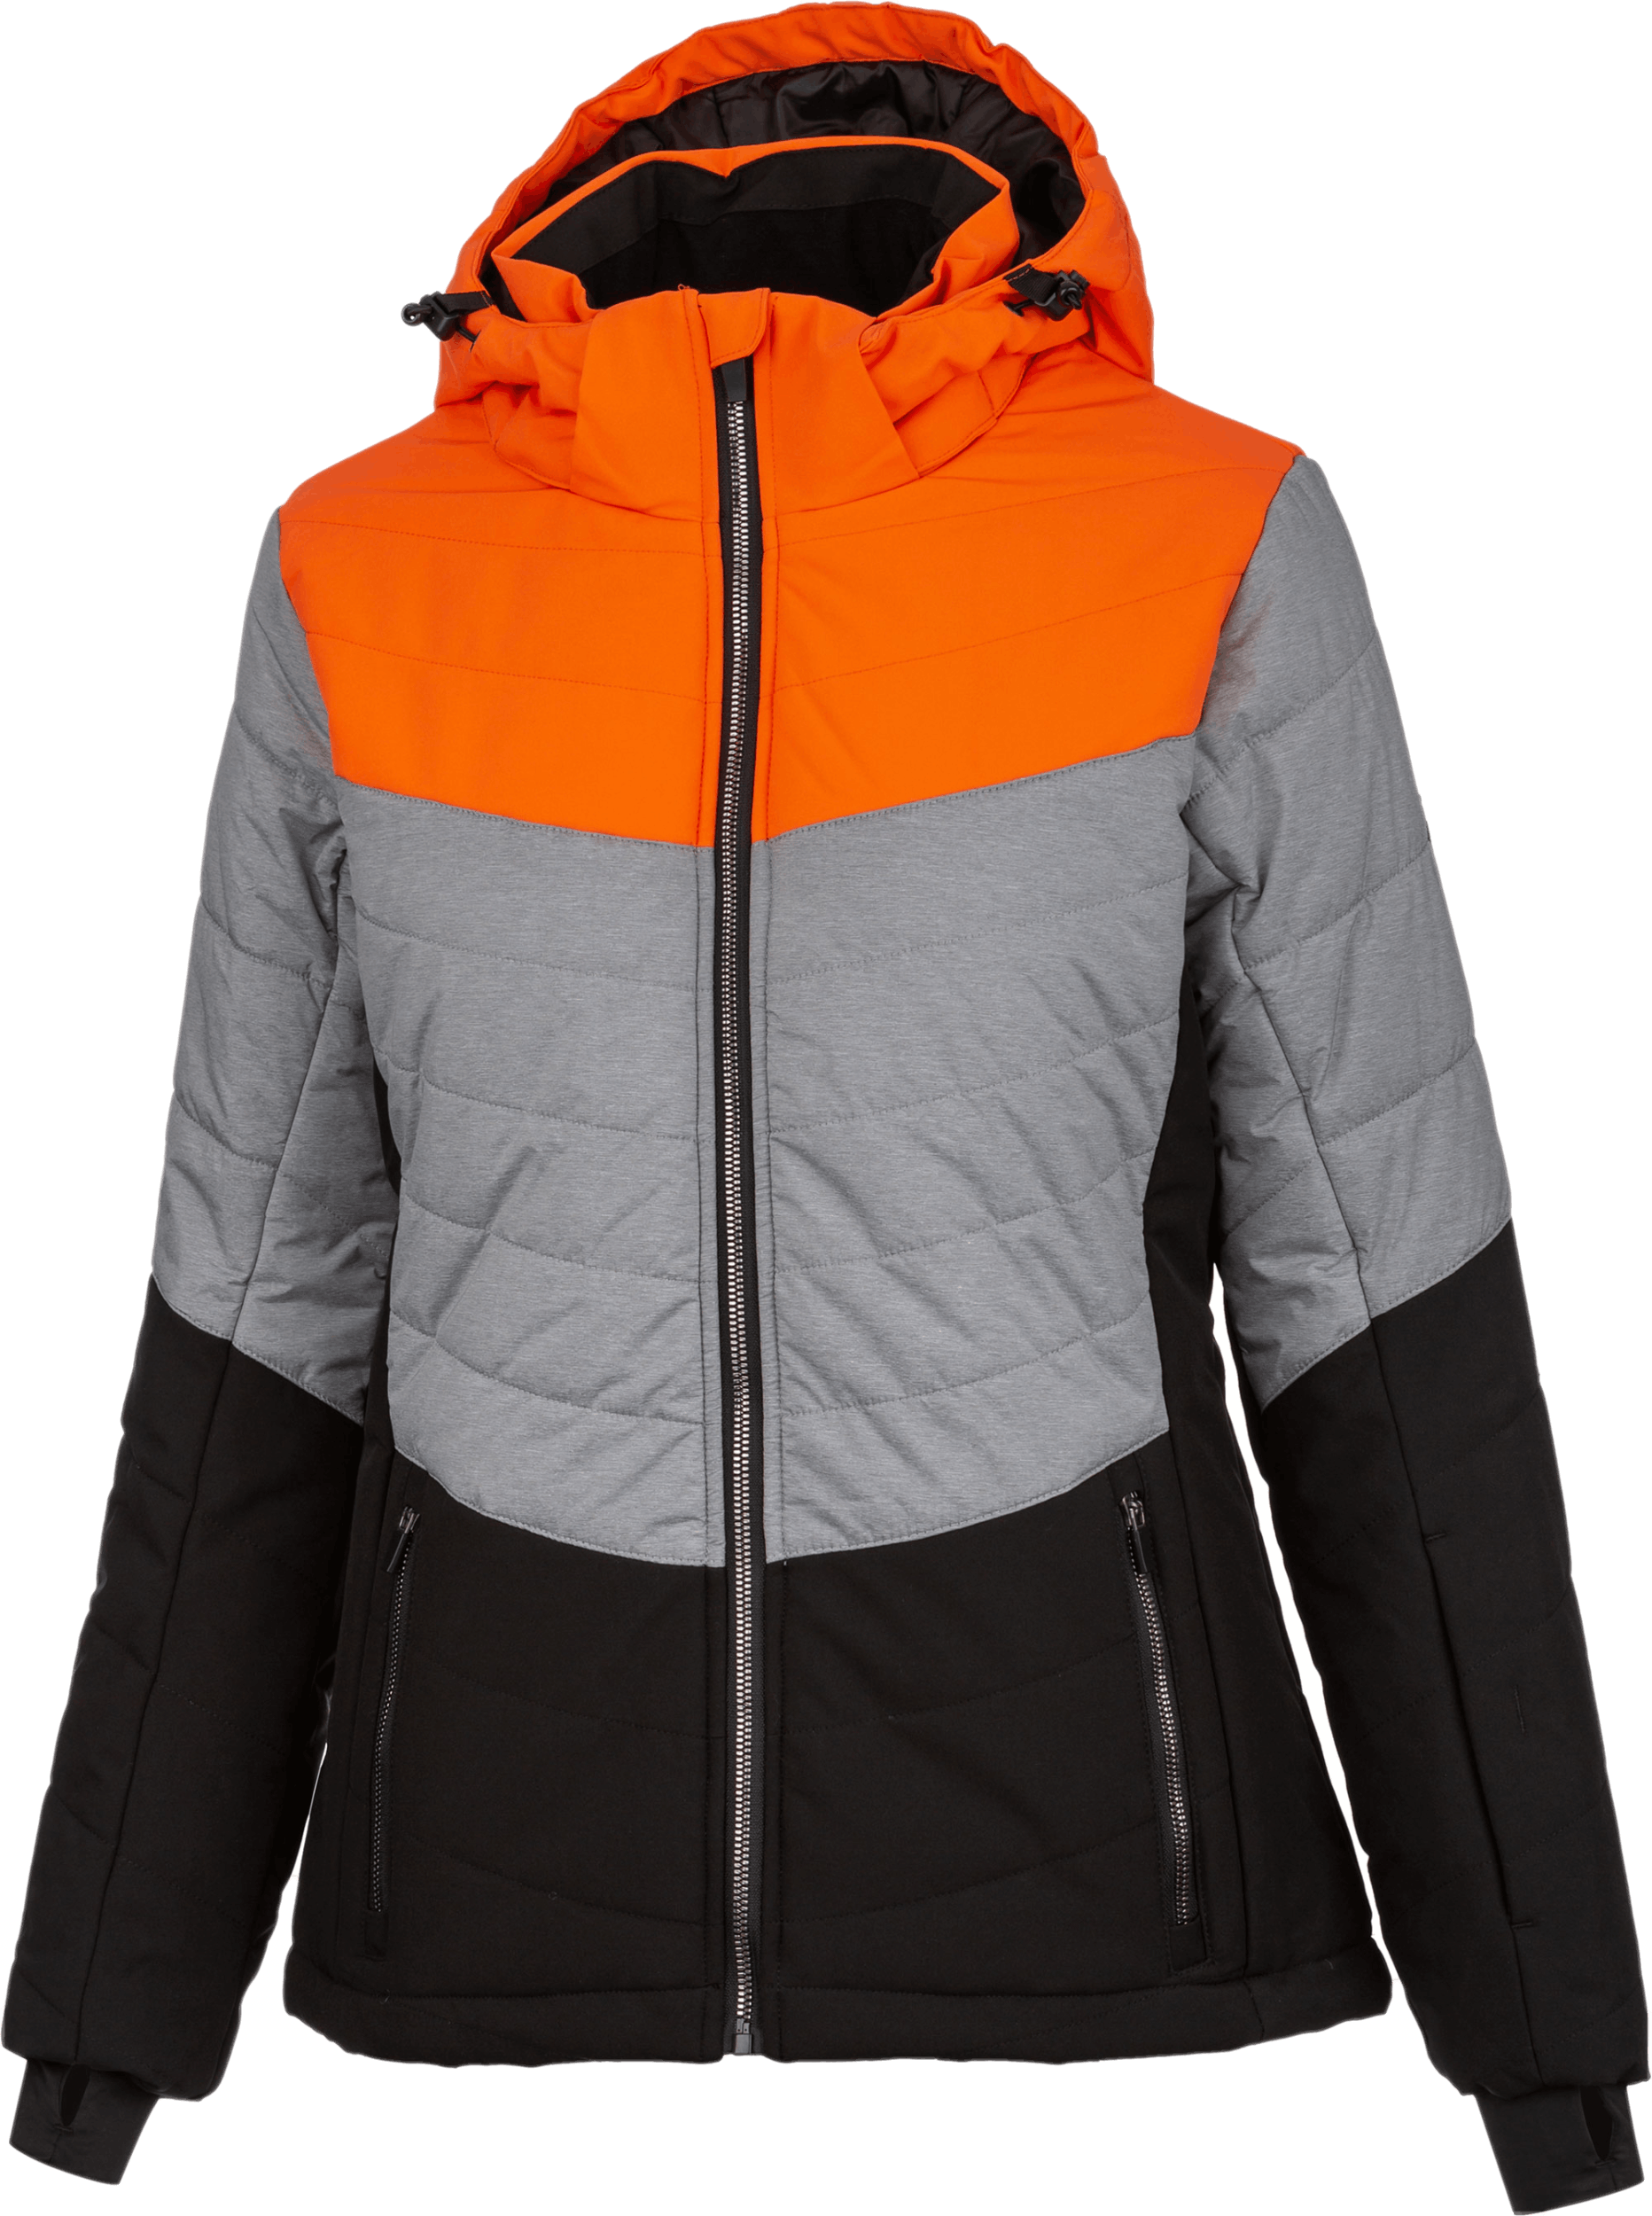 Hot Stuff JKT Woman - Skijacke - Damen